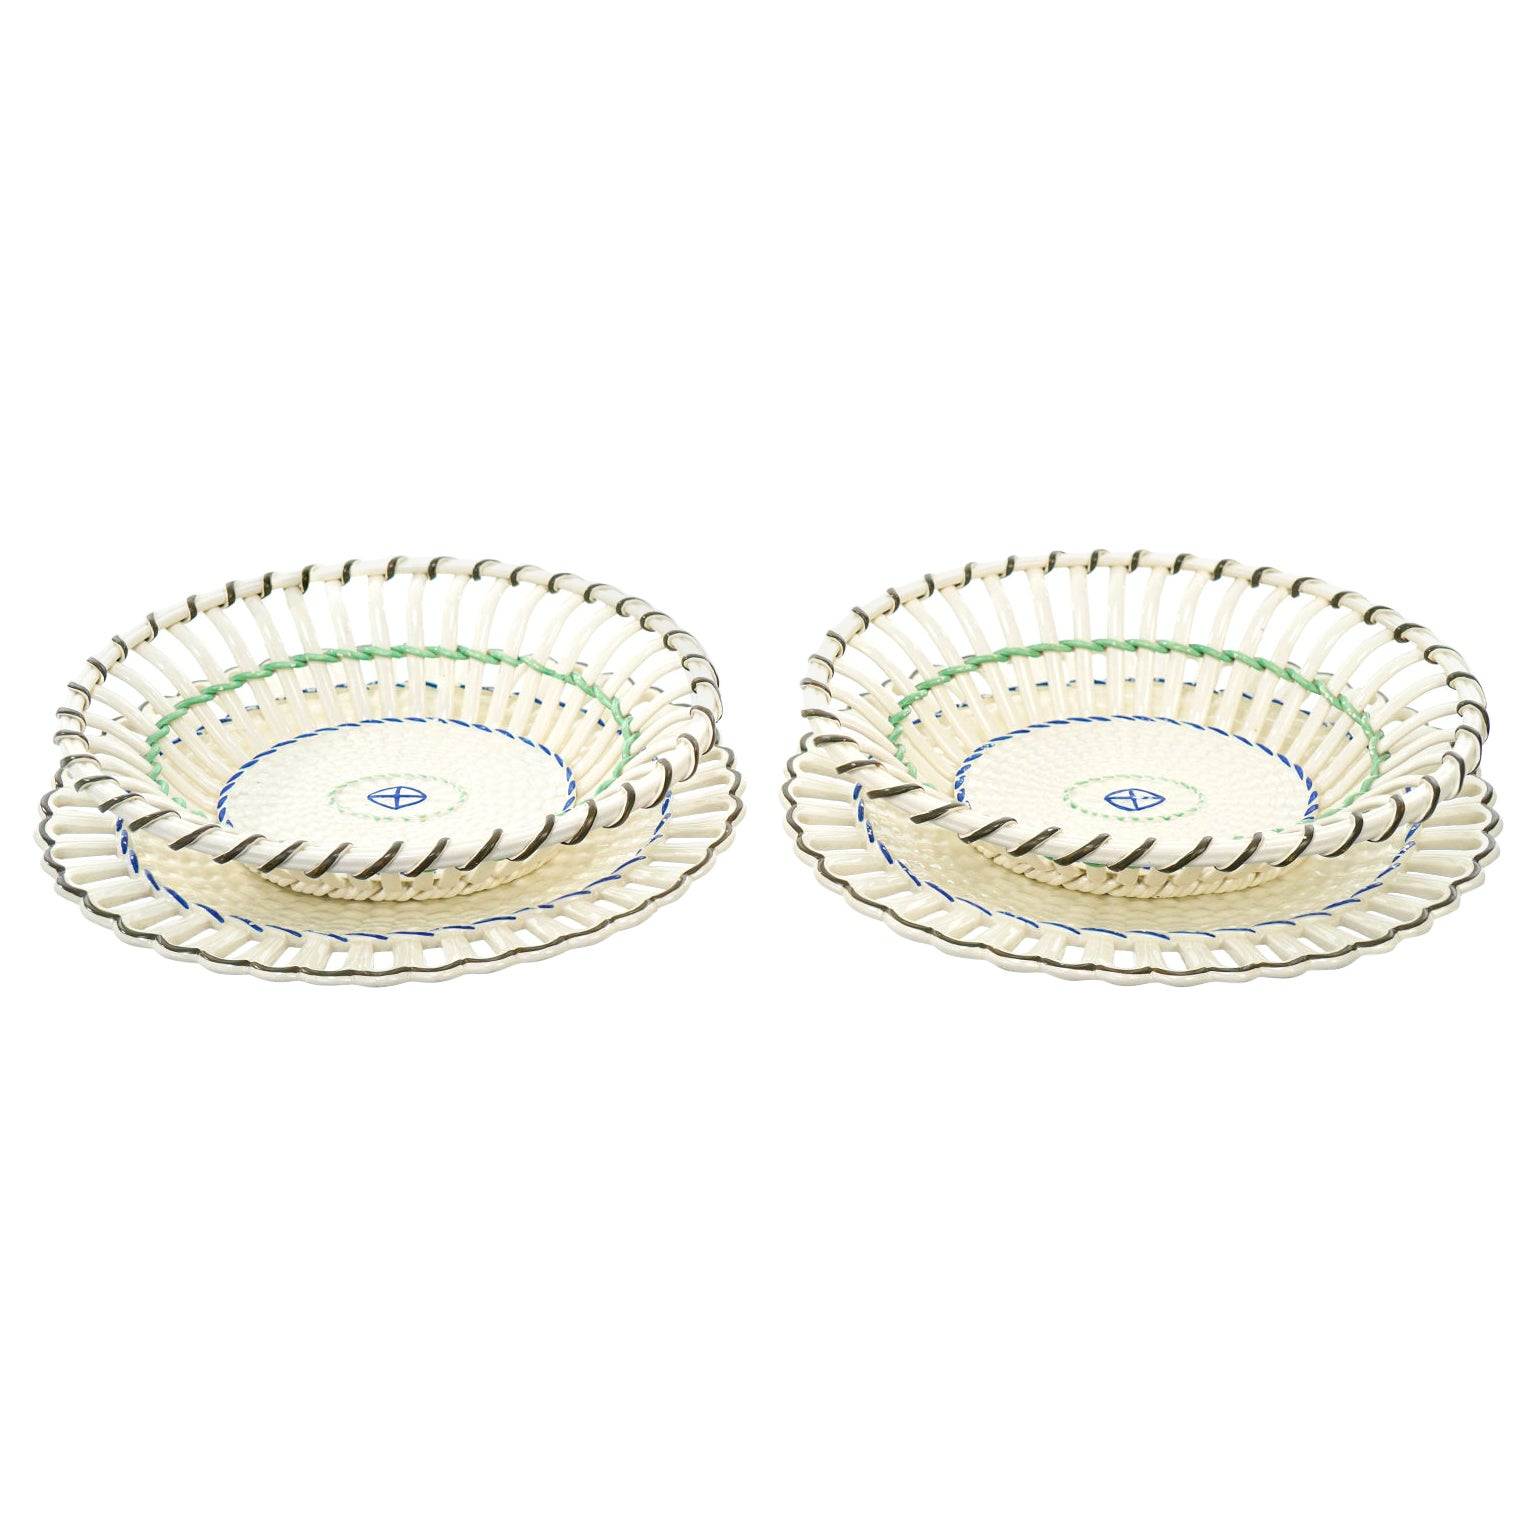 Pair of Wedgwood Creamware Chestnut Baskets and Underplates